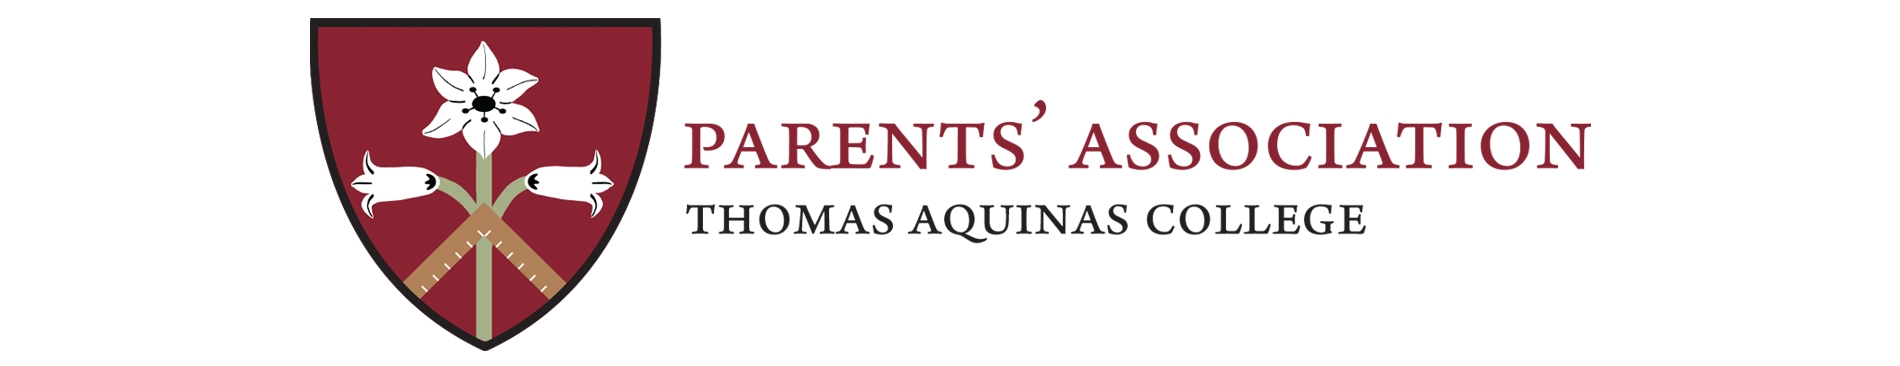 Parent's Association of Thomas Aquinas College